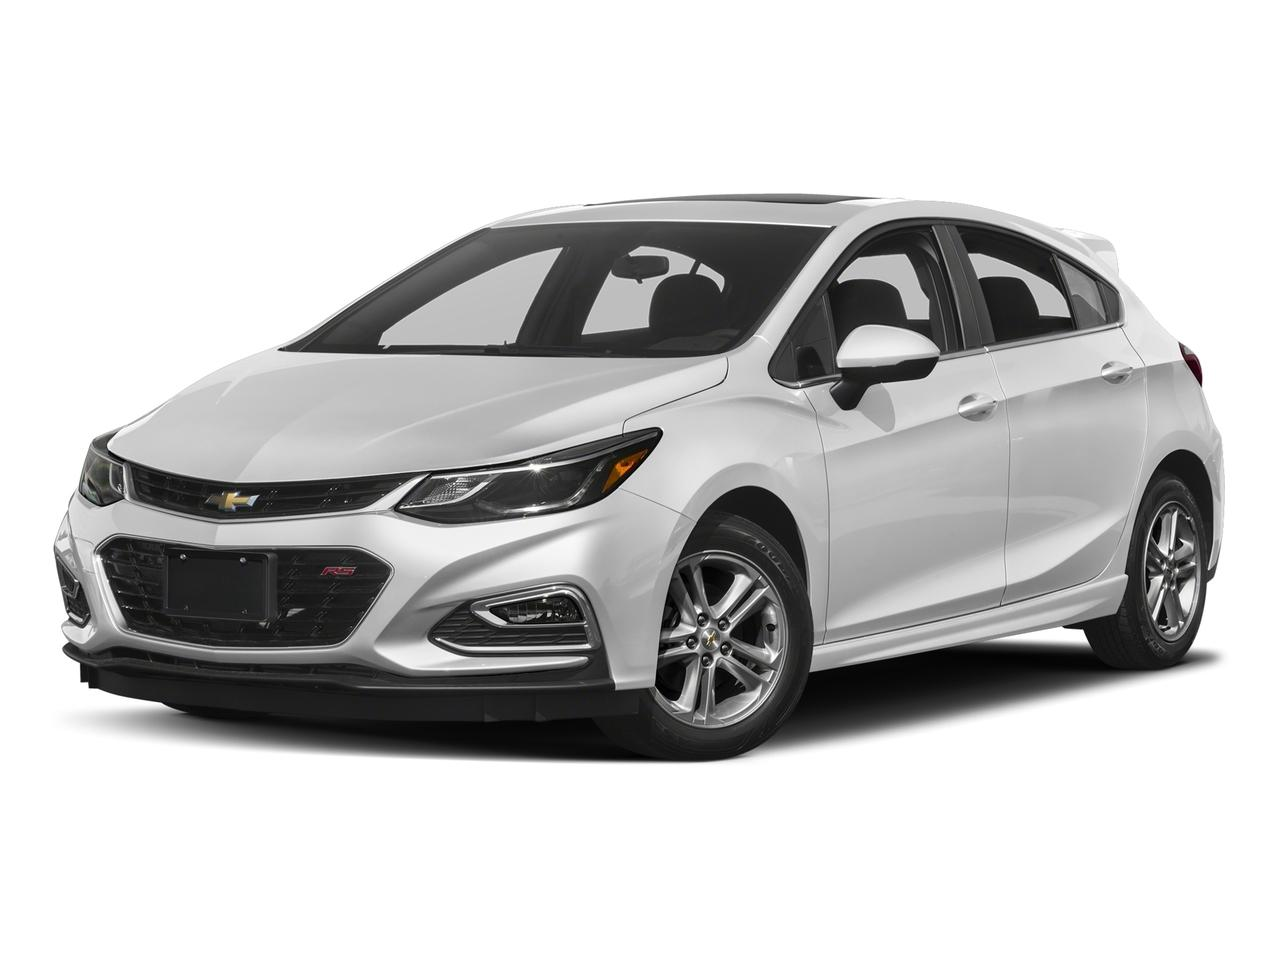 2017 Chevrolet Cruze Vehicle Photo in Odessa, TX 79762